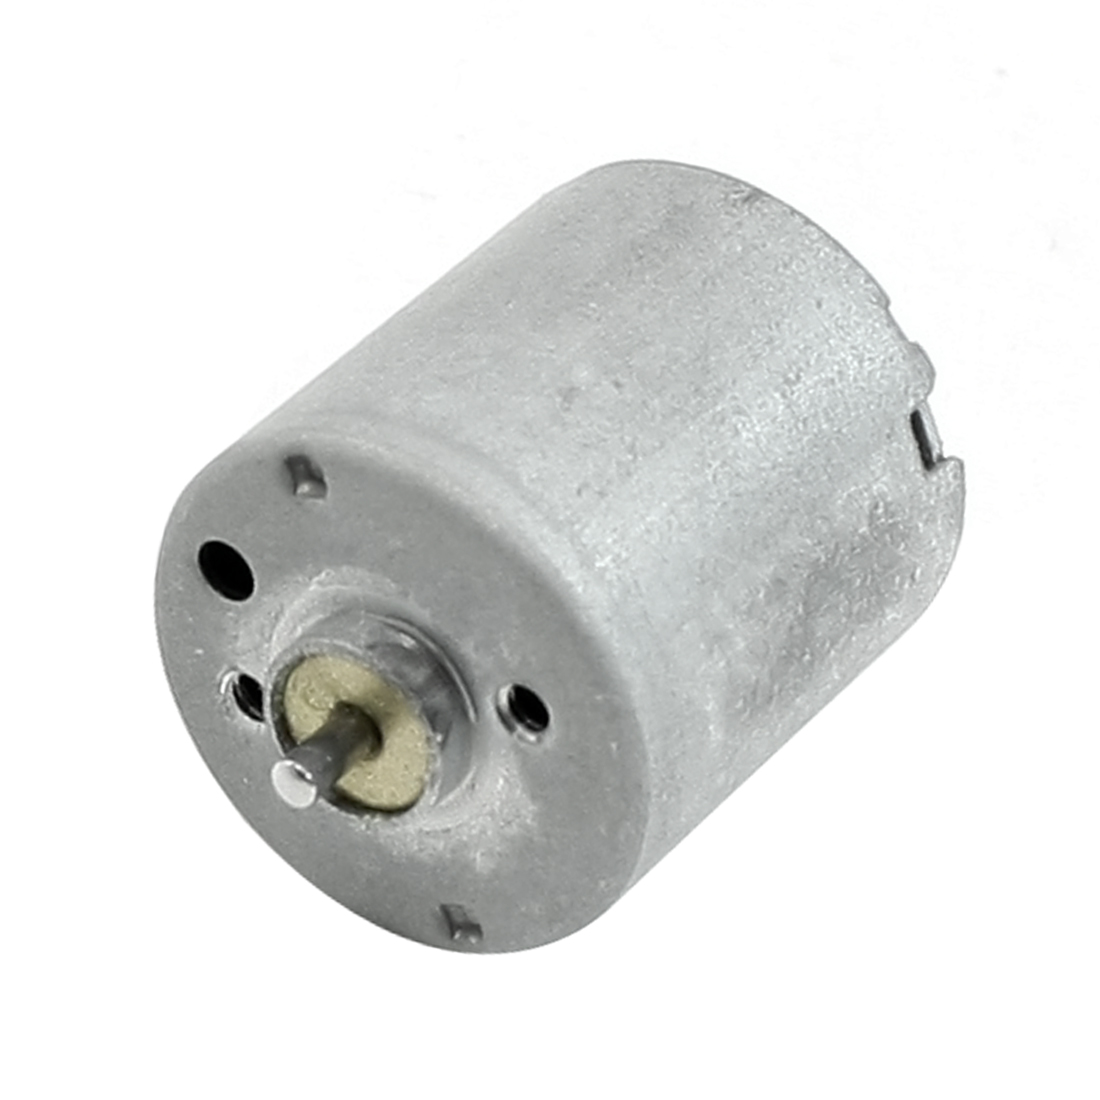 DC 6V 5000RPM 2 Pin Terminals Cylindrical Permanent Magnet Mini Geared Motor